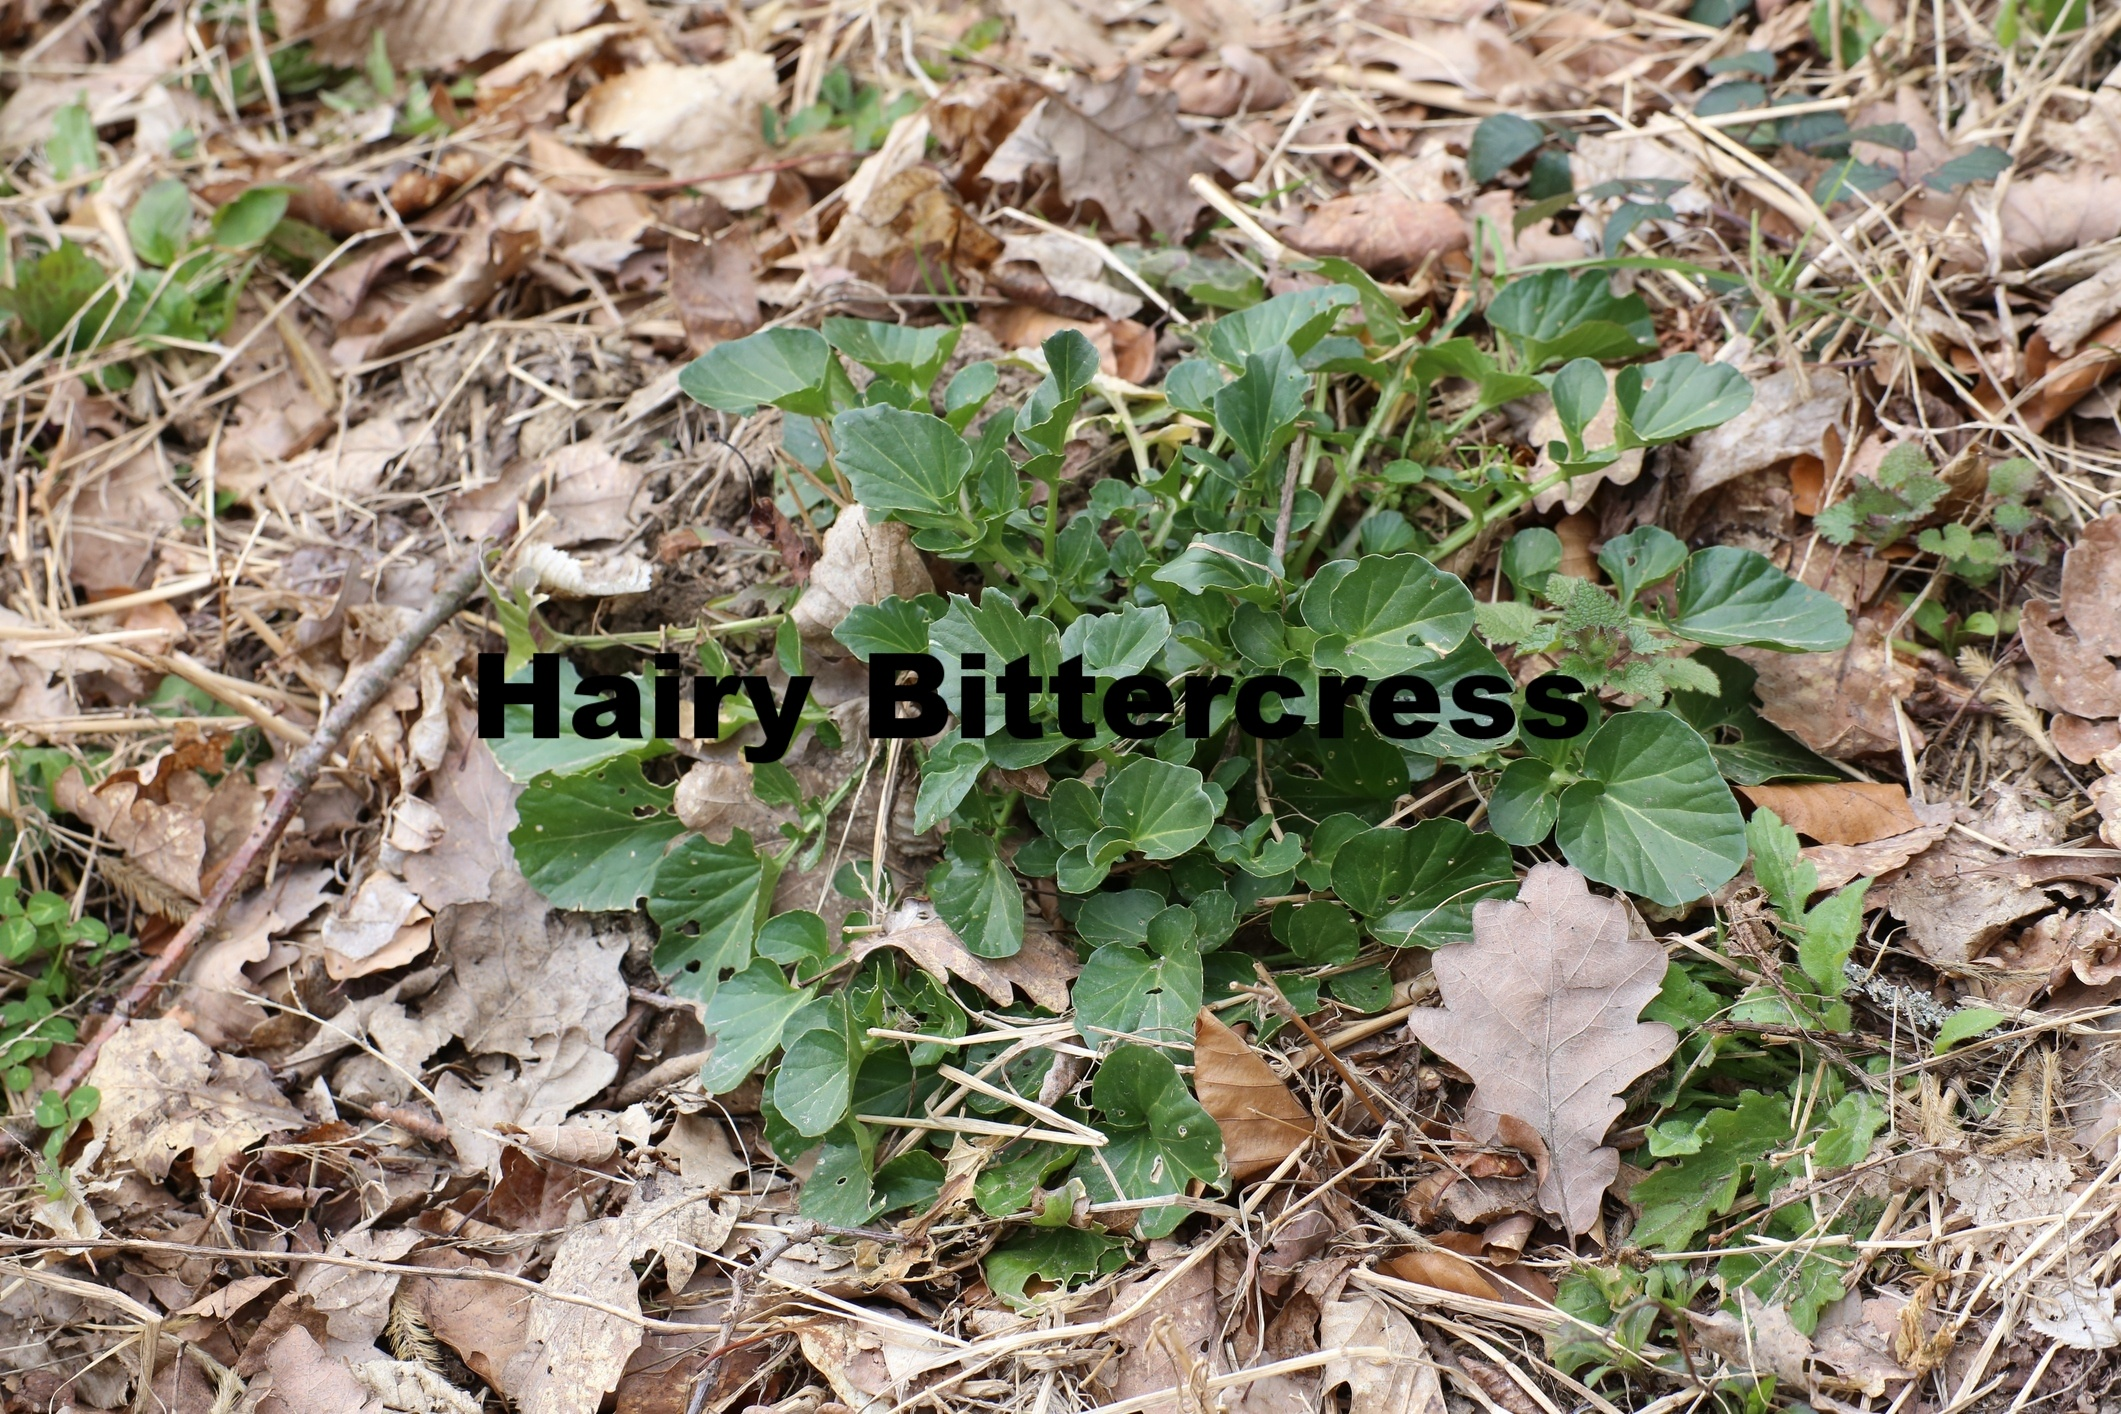 Hairy-Bittercress-Identification-844258-edited.jpg